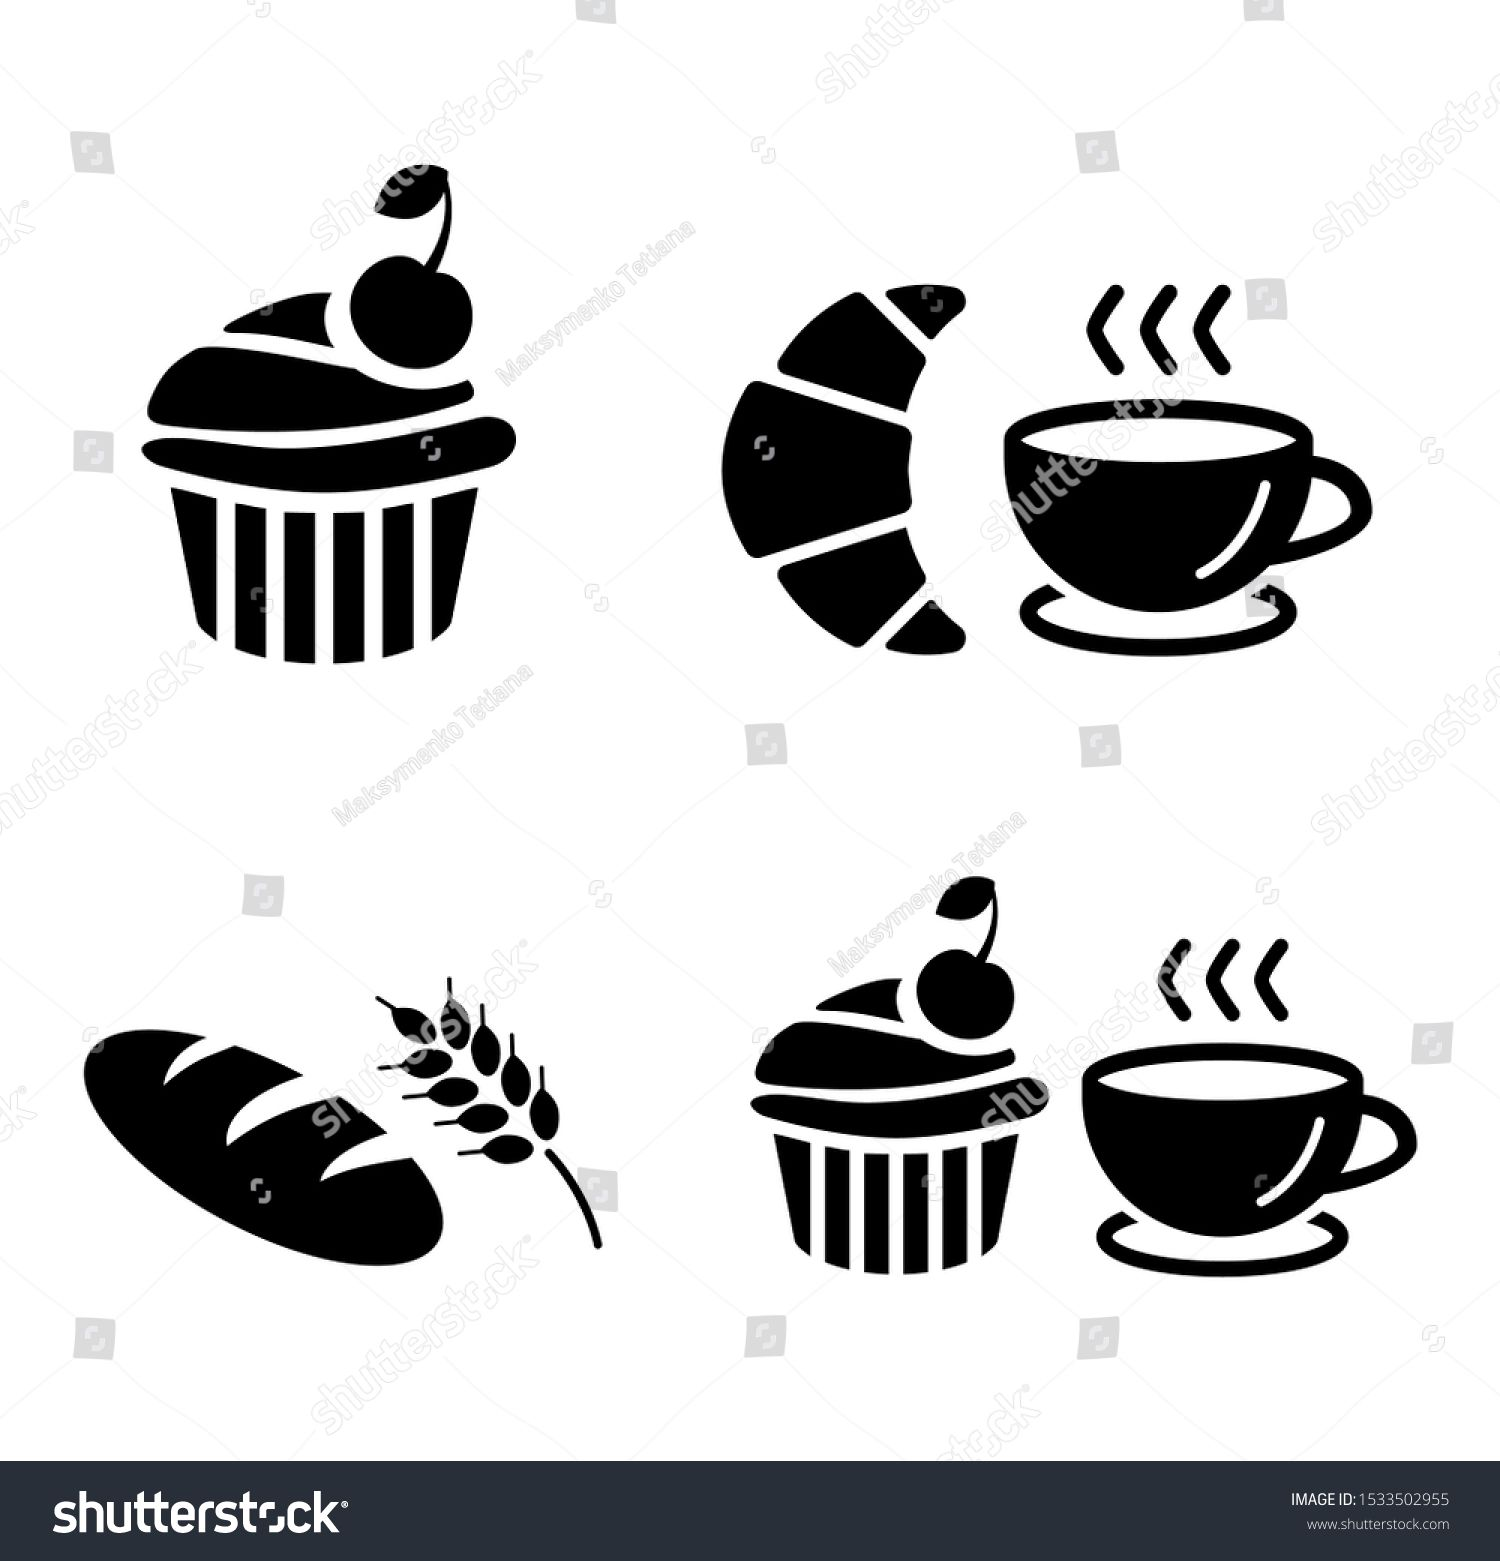 Set of icons cupcake, bread, muffin, coffee cup